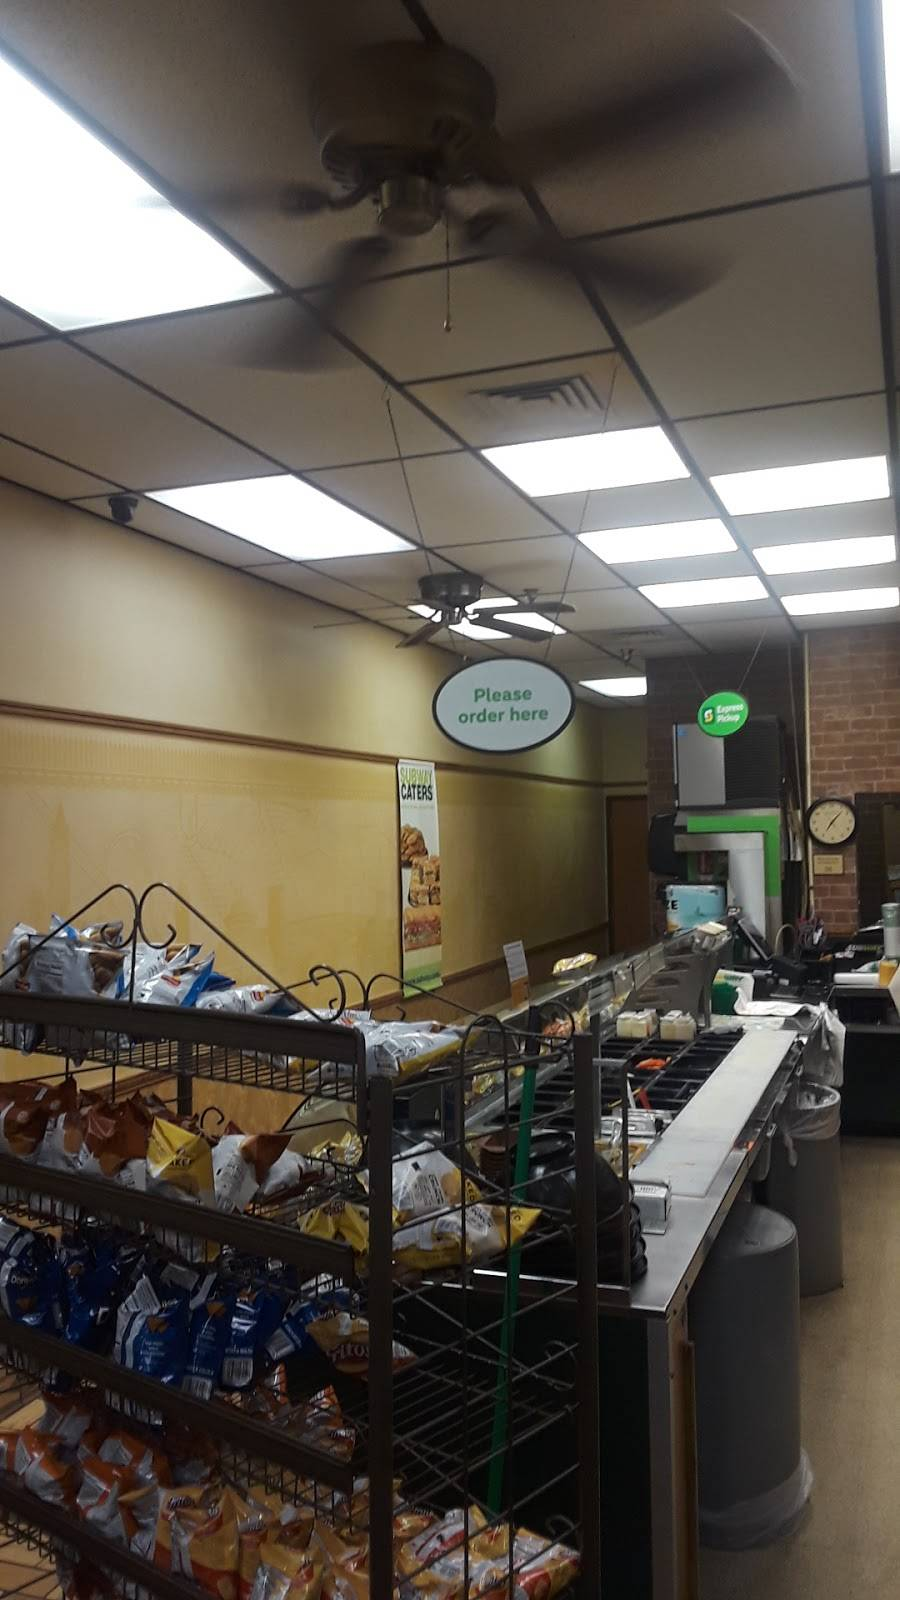 Subway | restaurant | 436 E Waterloo Rd, Akron, OH 44319, USA | 3307734447 OR +1 330-773-4447